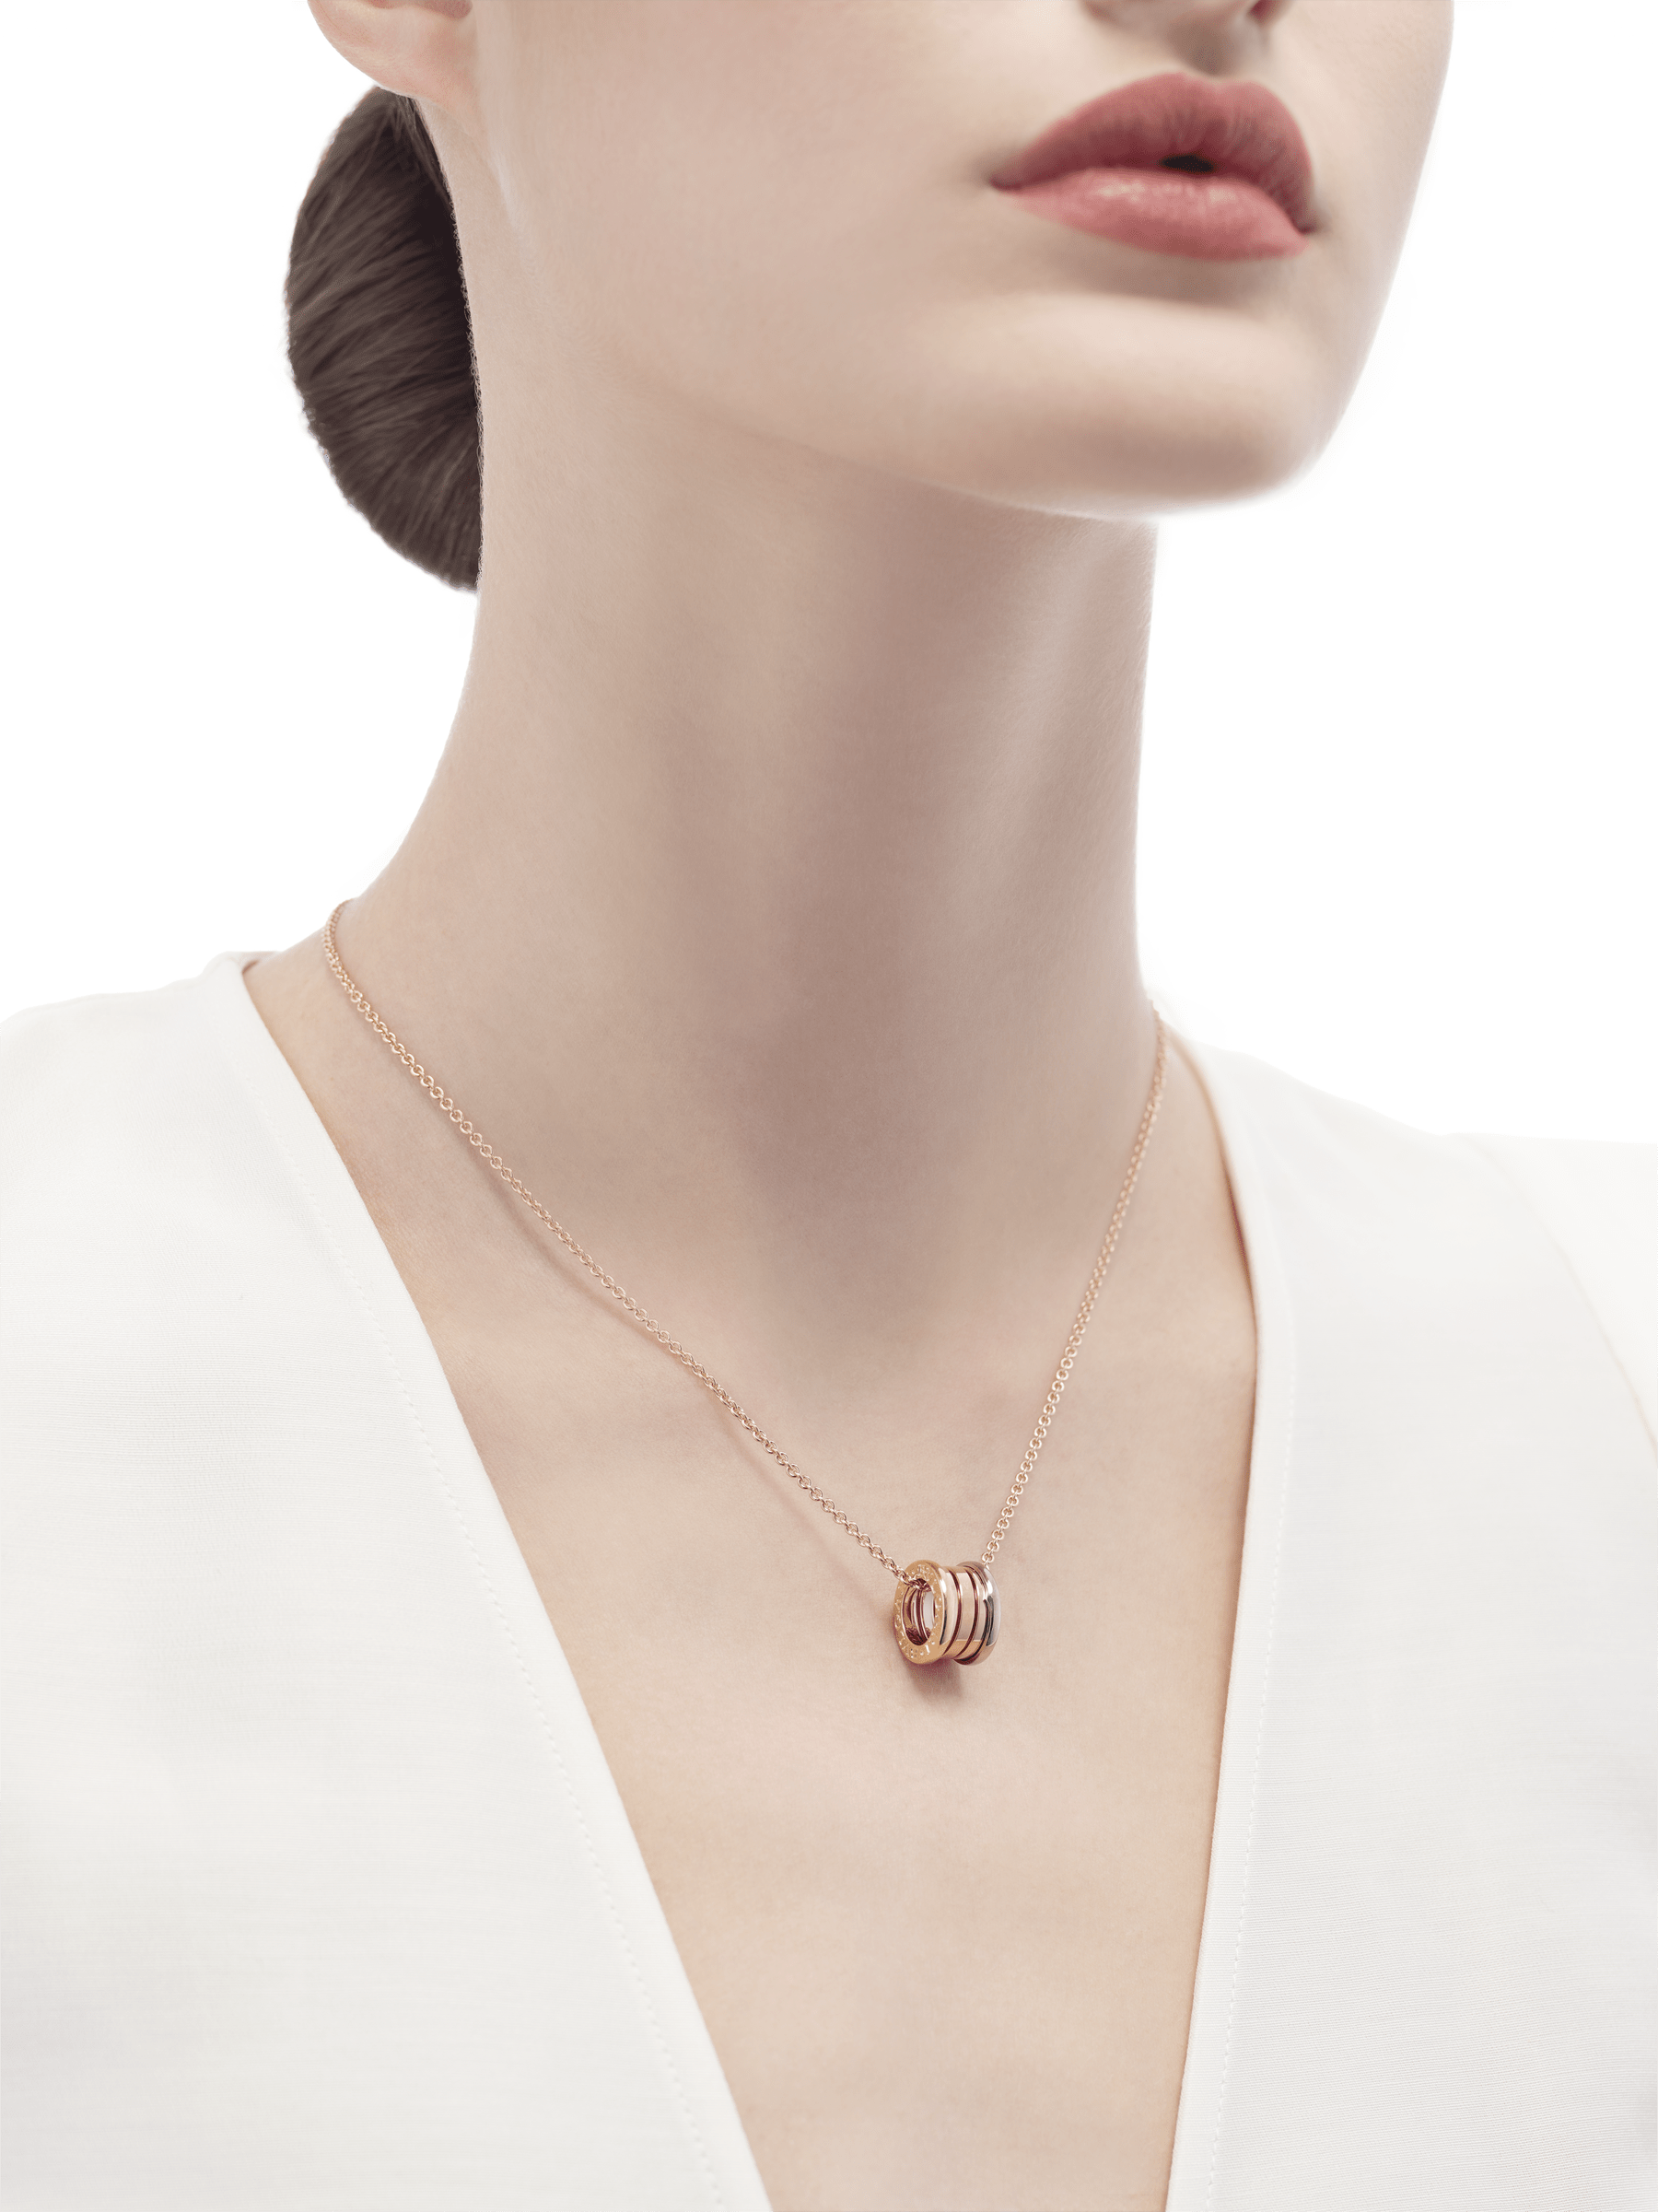 B.zero1 necklace in 18 kt rose gold with pendant in 18 kt rose, white and yellow gold. 352397 image 4